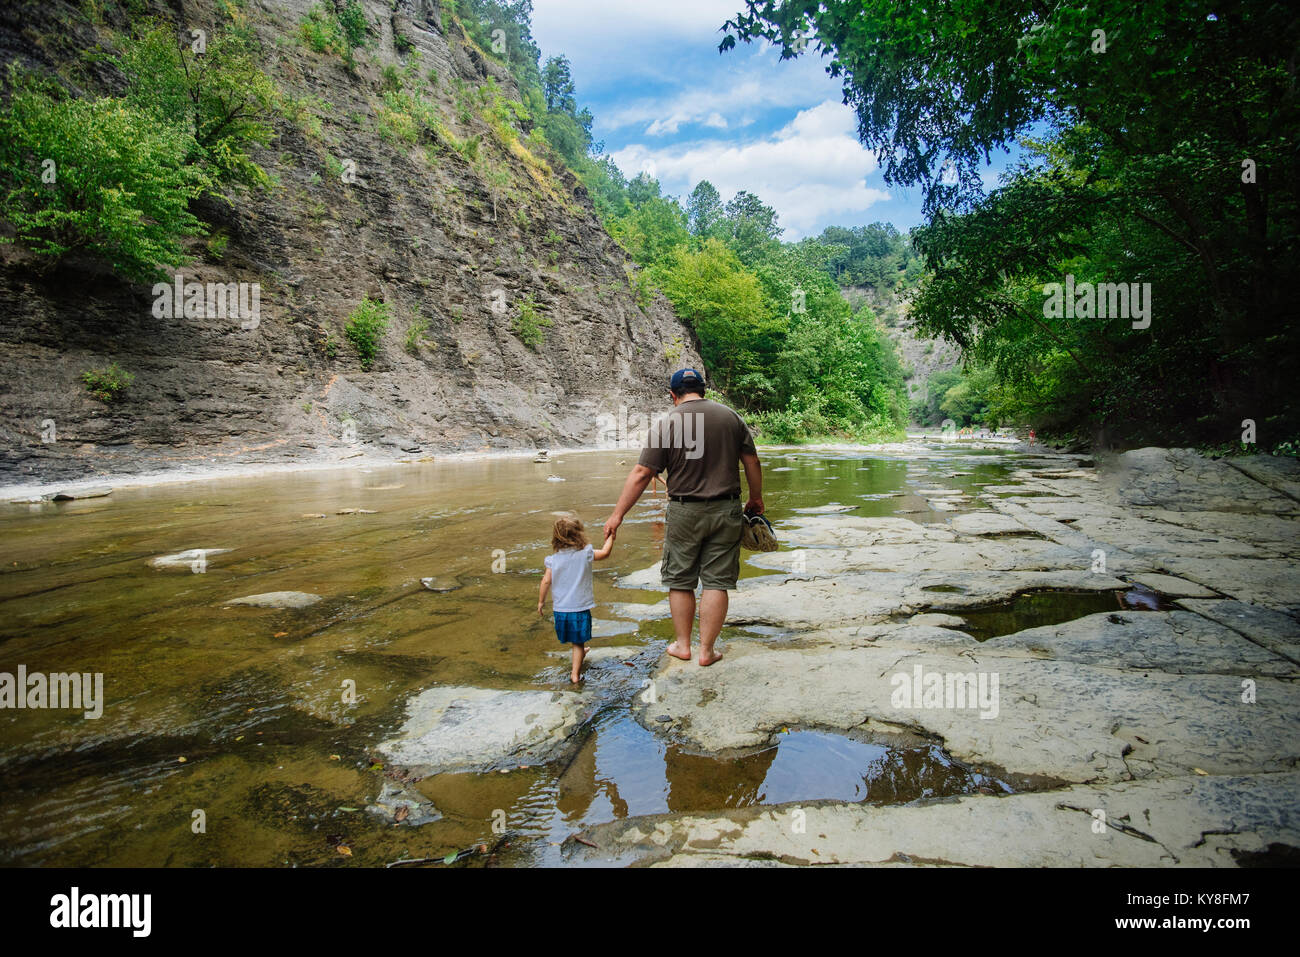 A family walks together in a state park in the United States Stock Photo